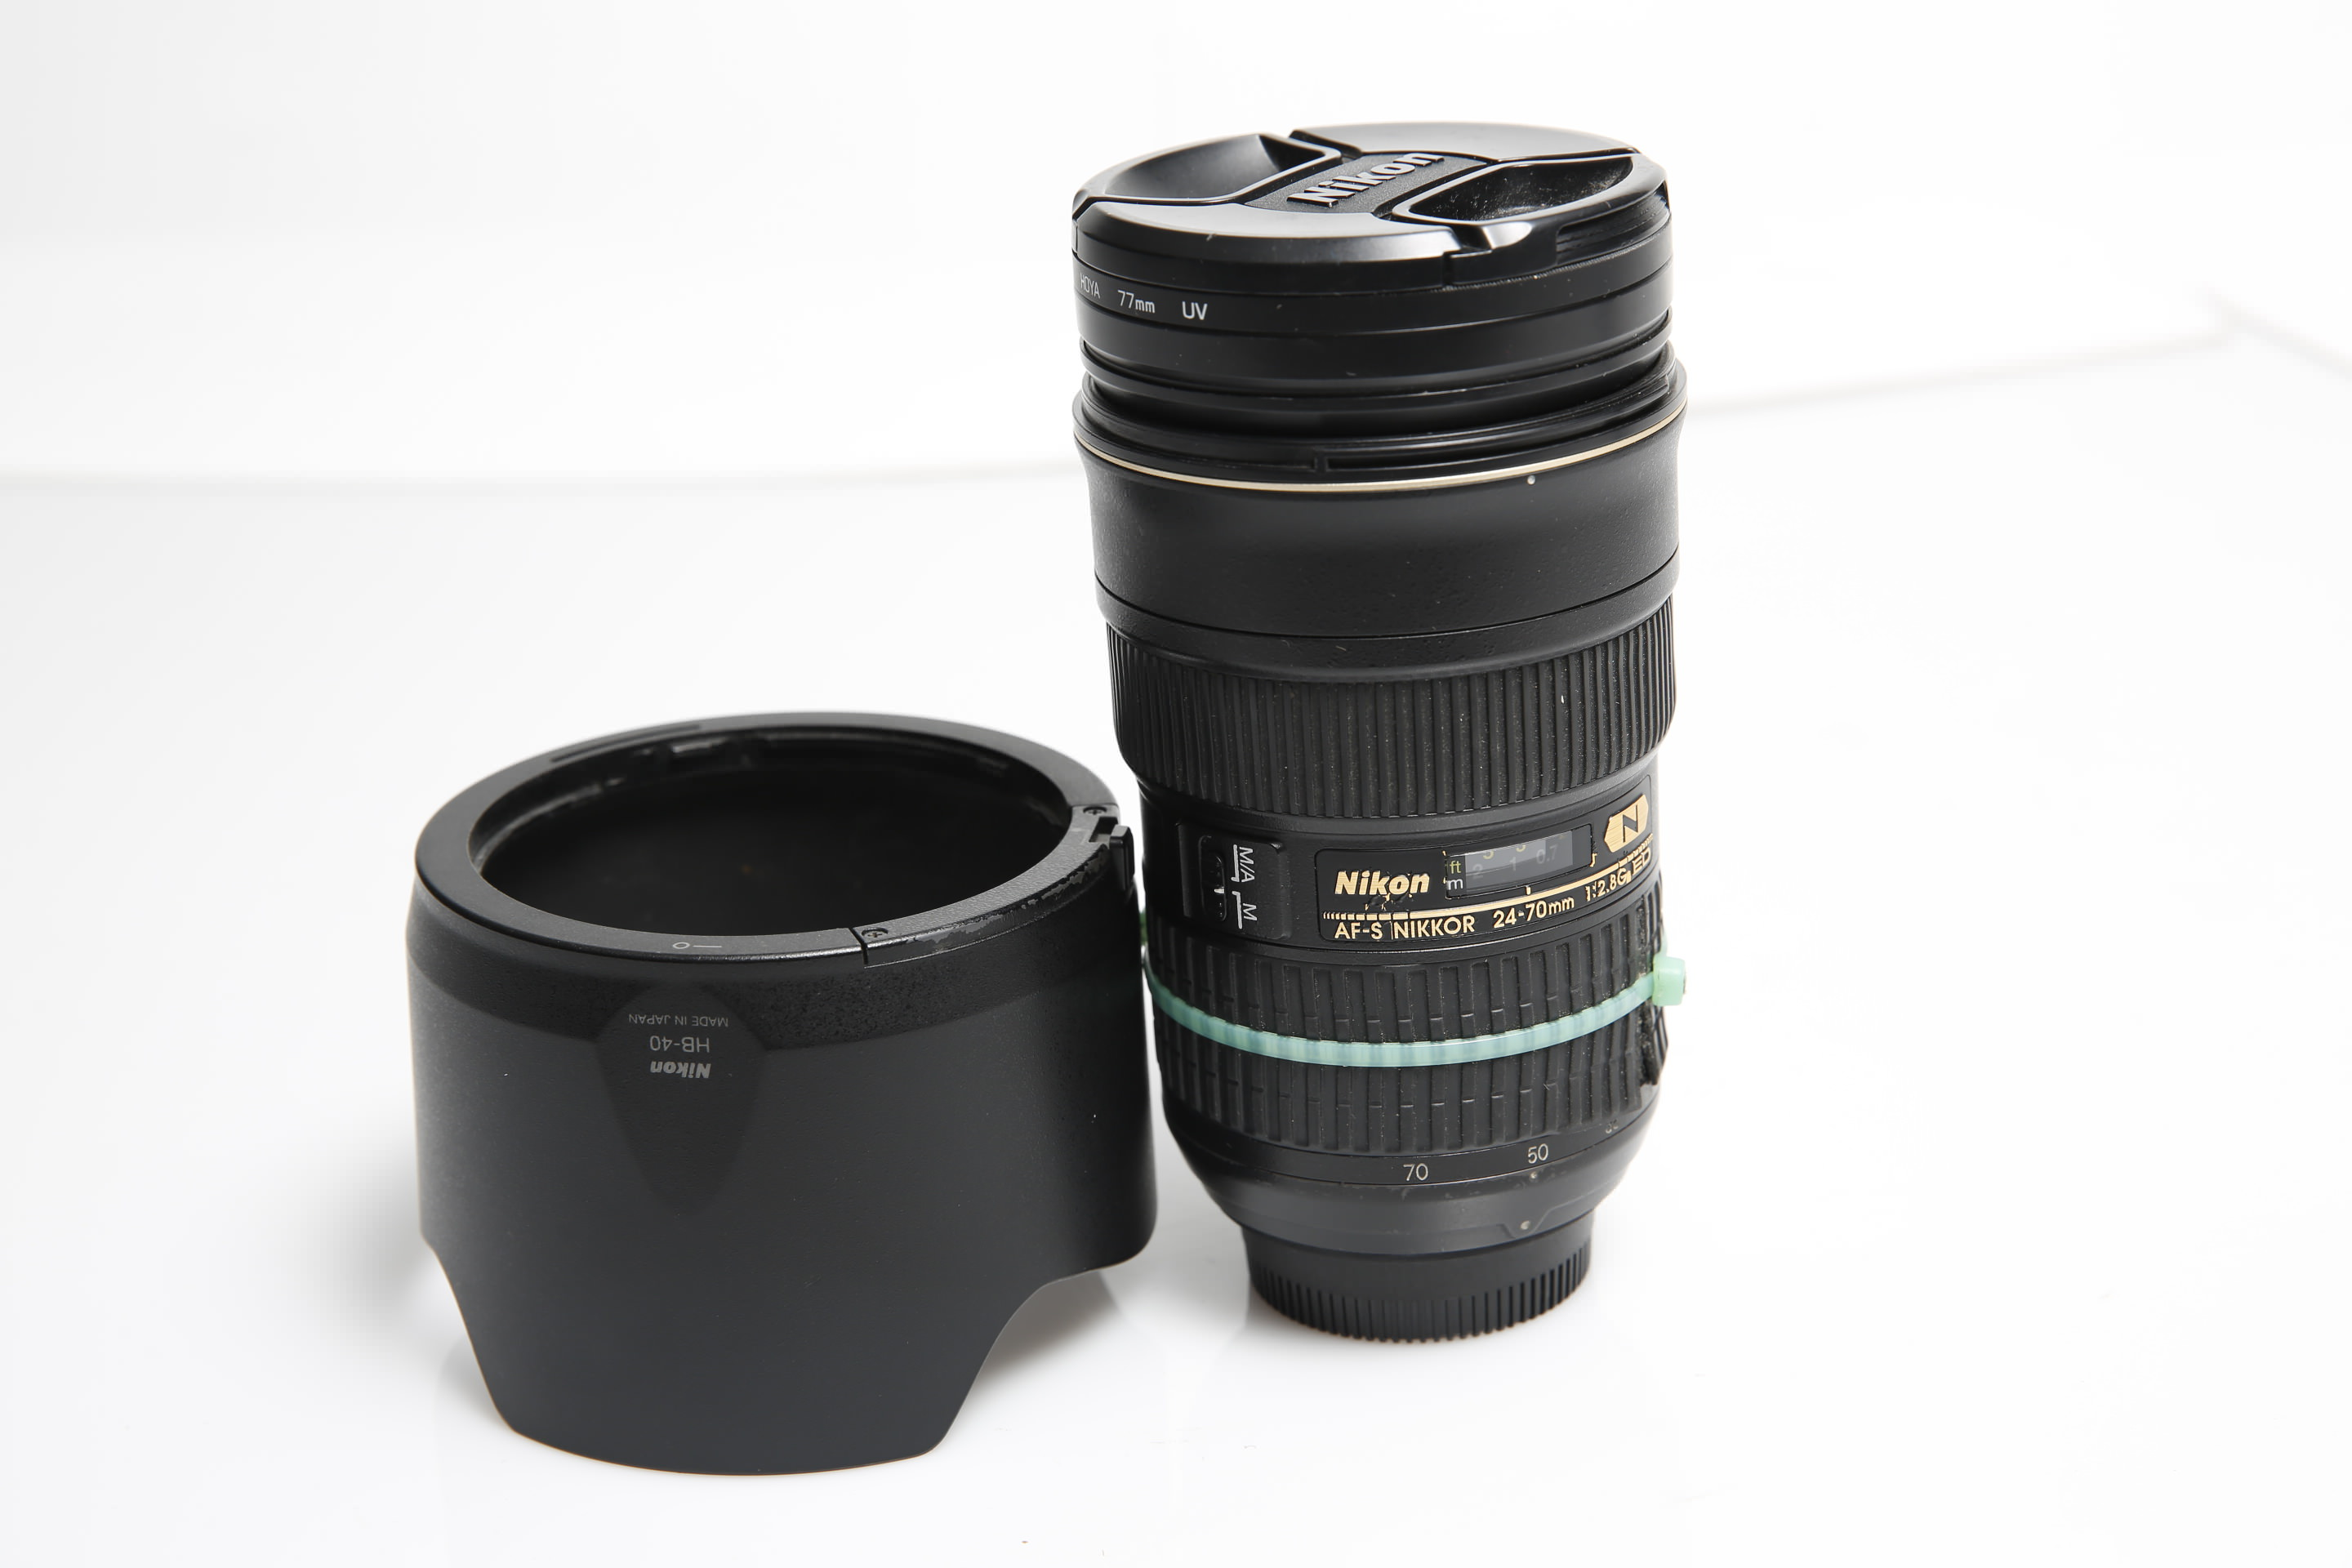 nikon lens af s 24 70mm f 2 8 ged oktarent. Black Bedroom Furniture Sets. Home Design Ideas